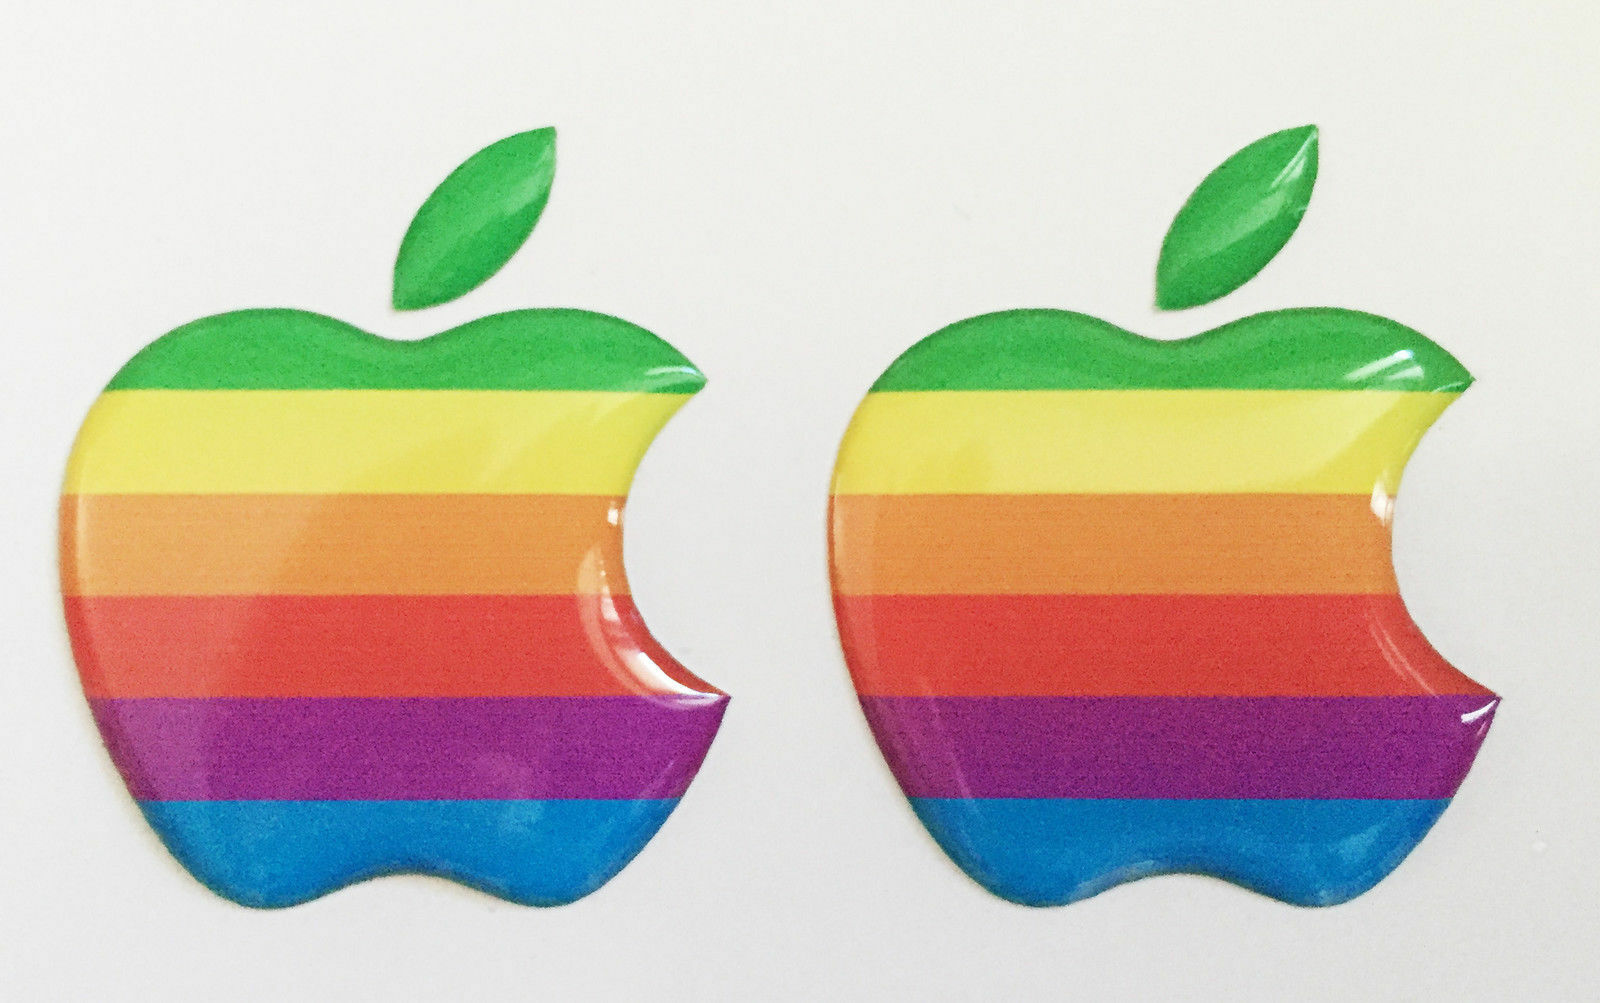 2 x 3d domed apple logo stickers for iphone ipad cover